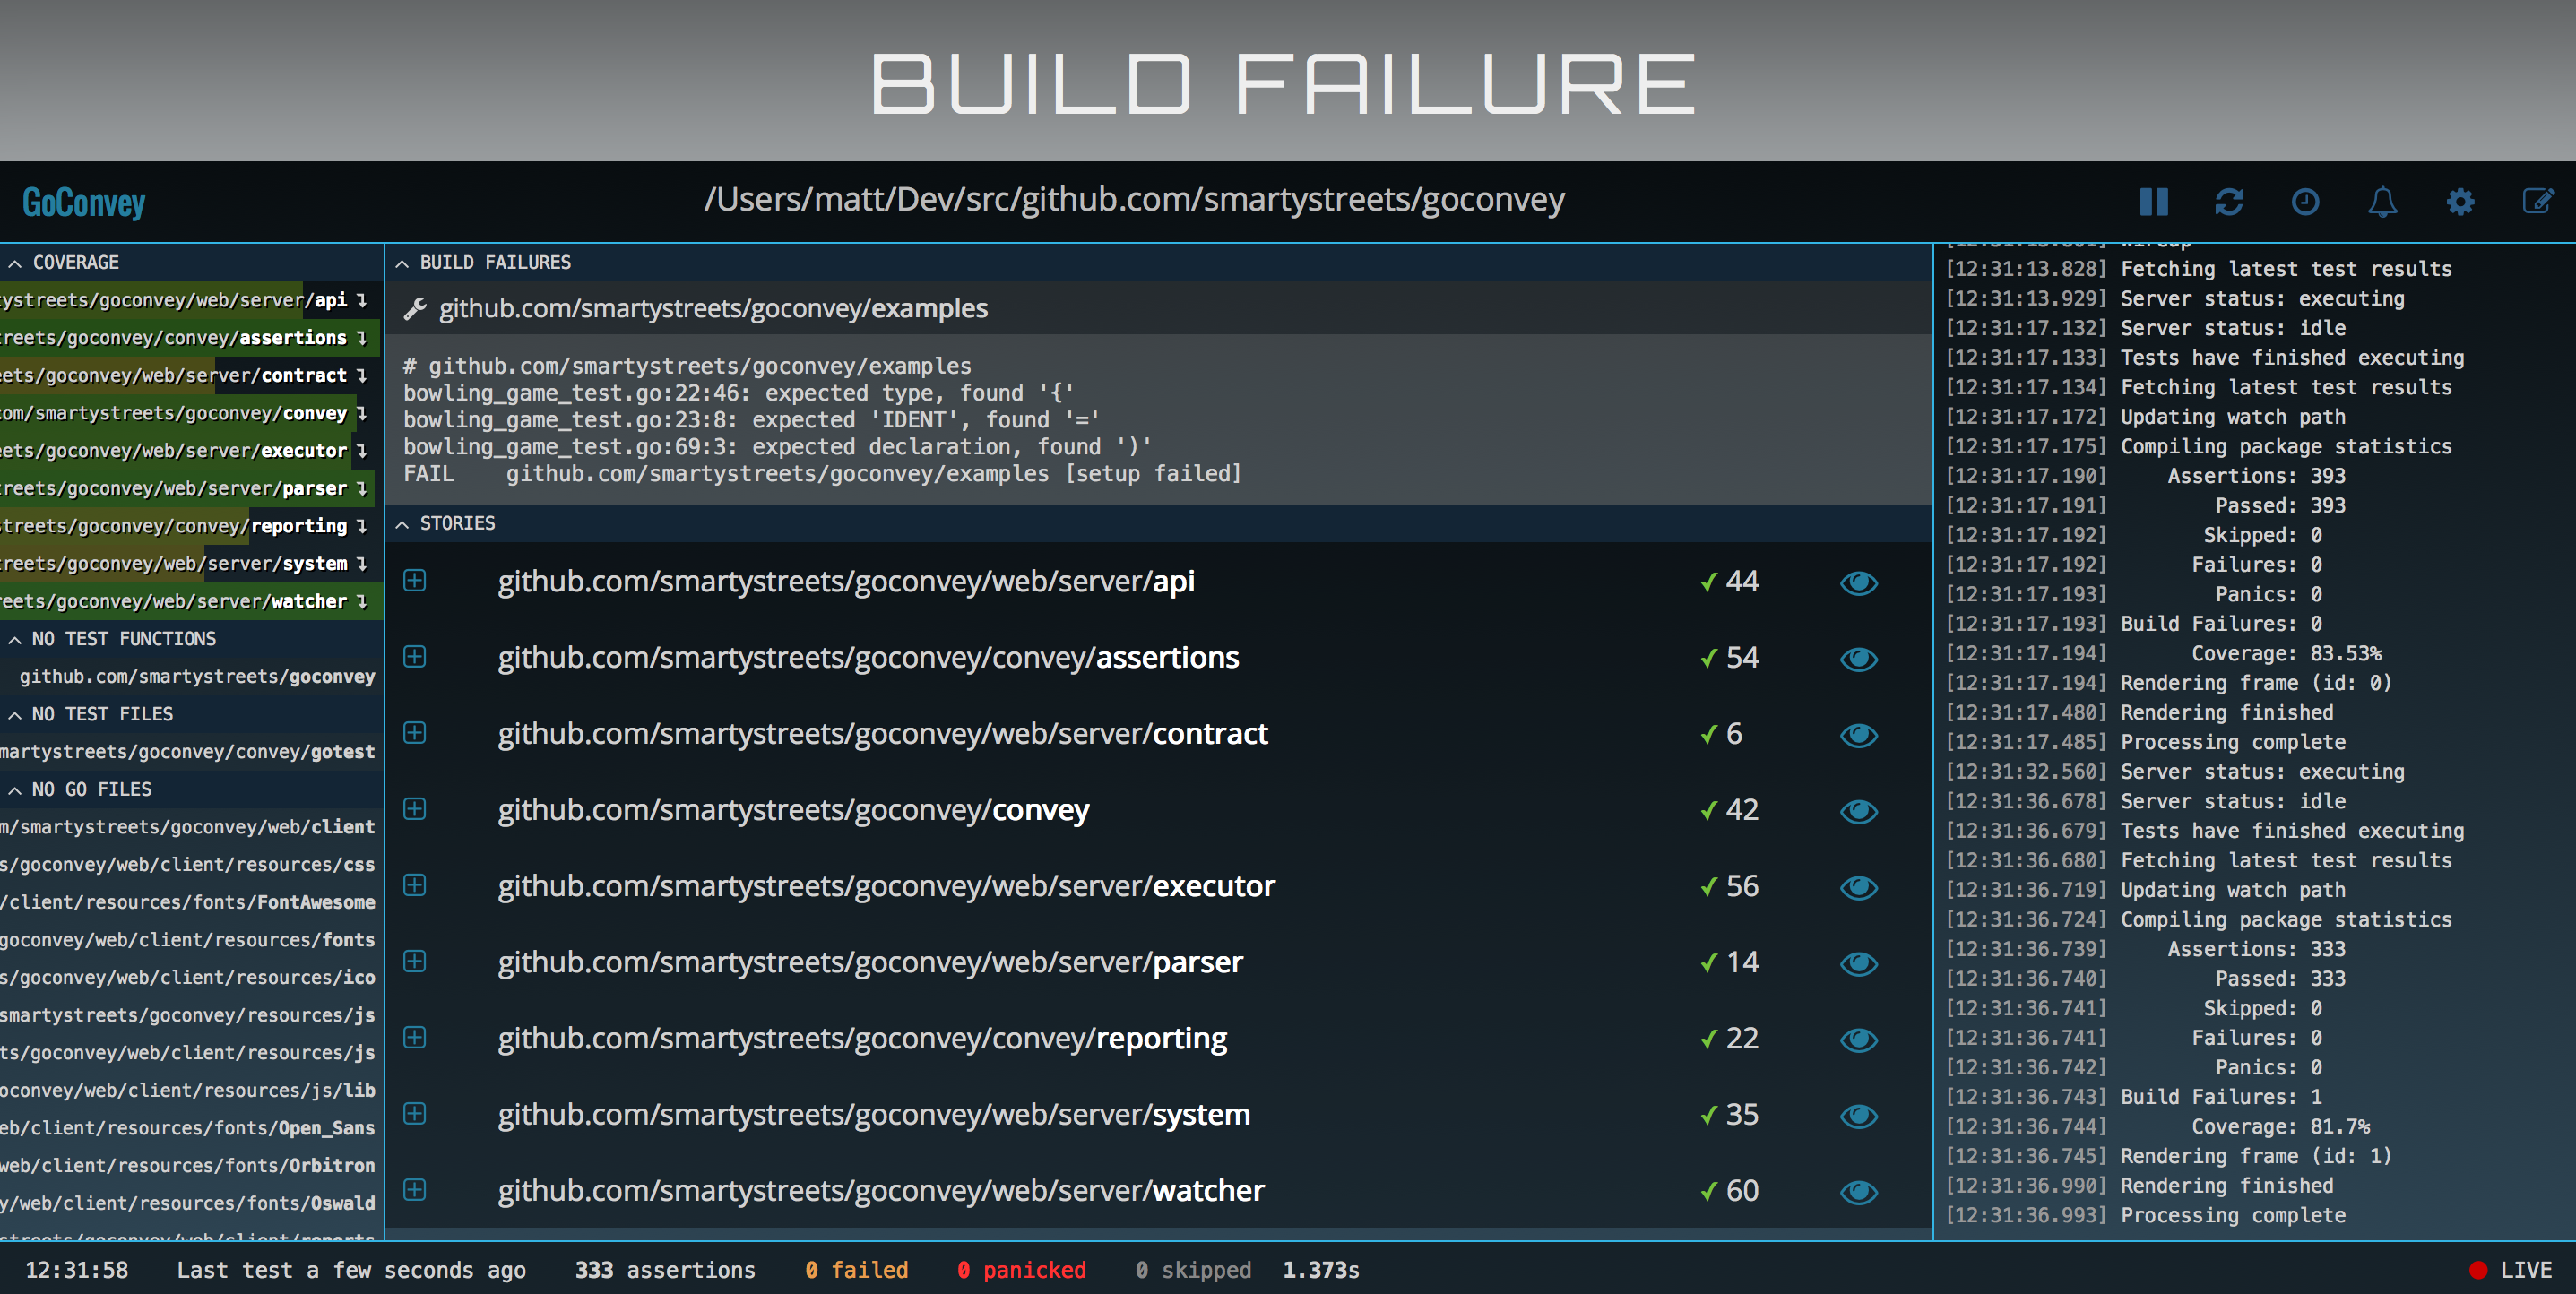 Build failure